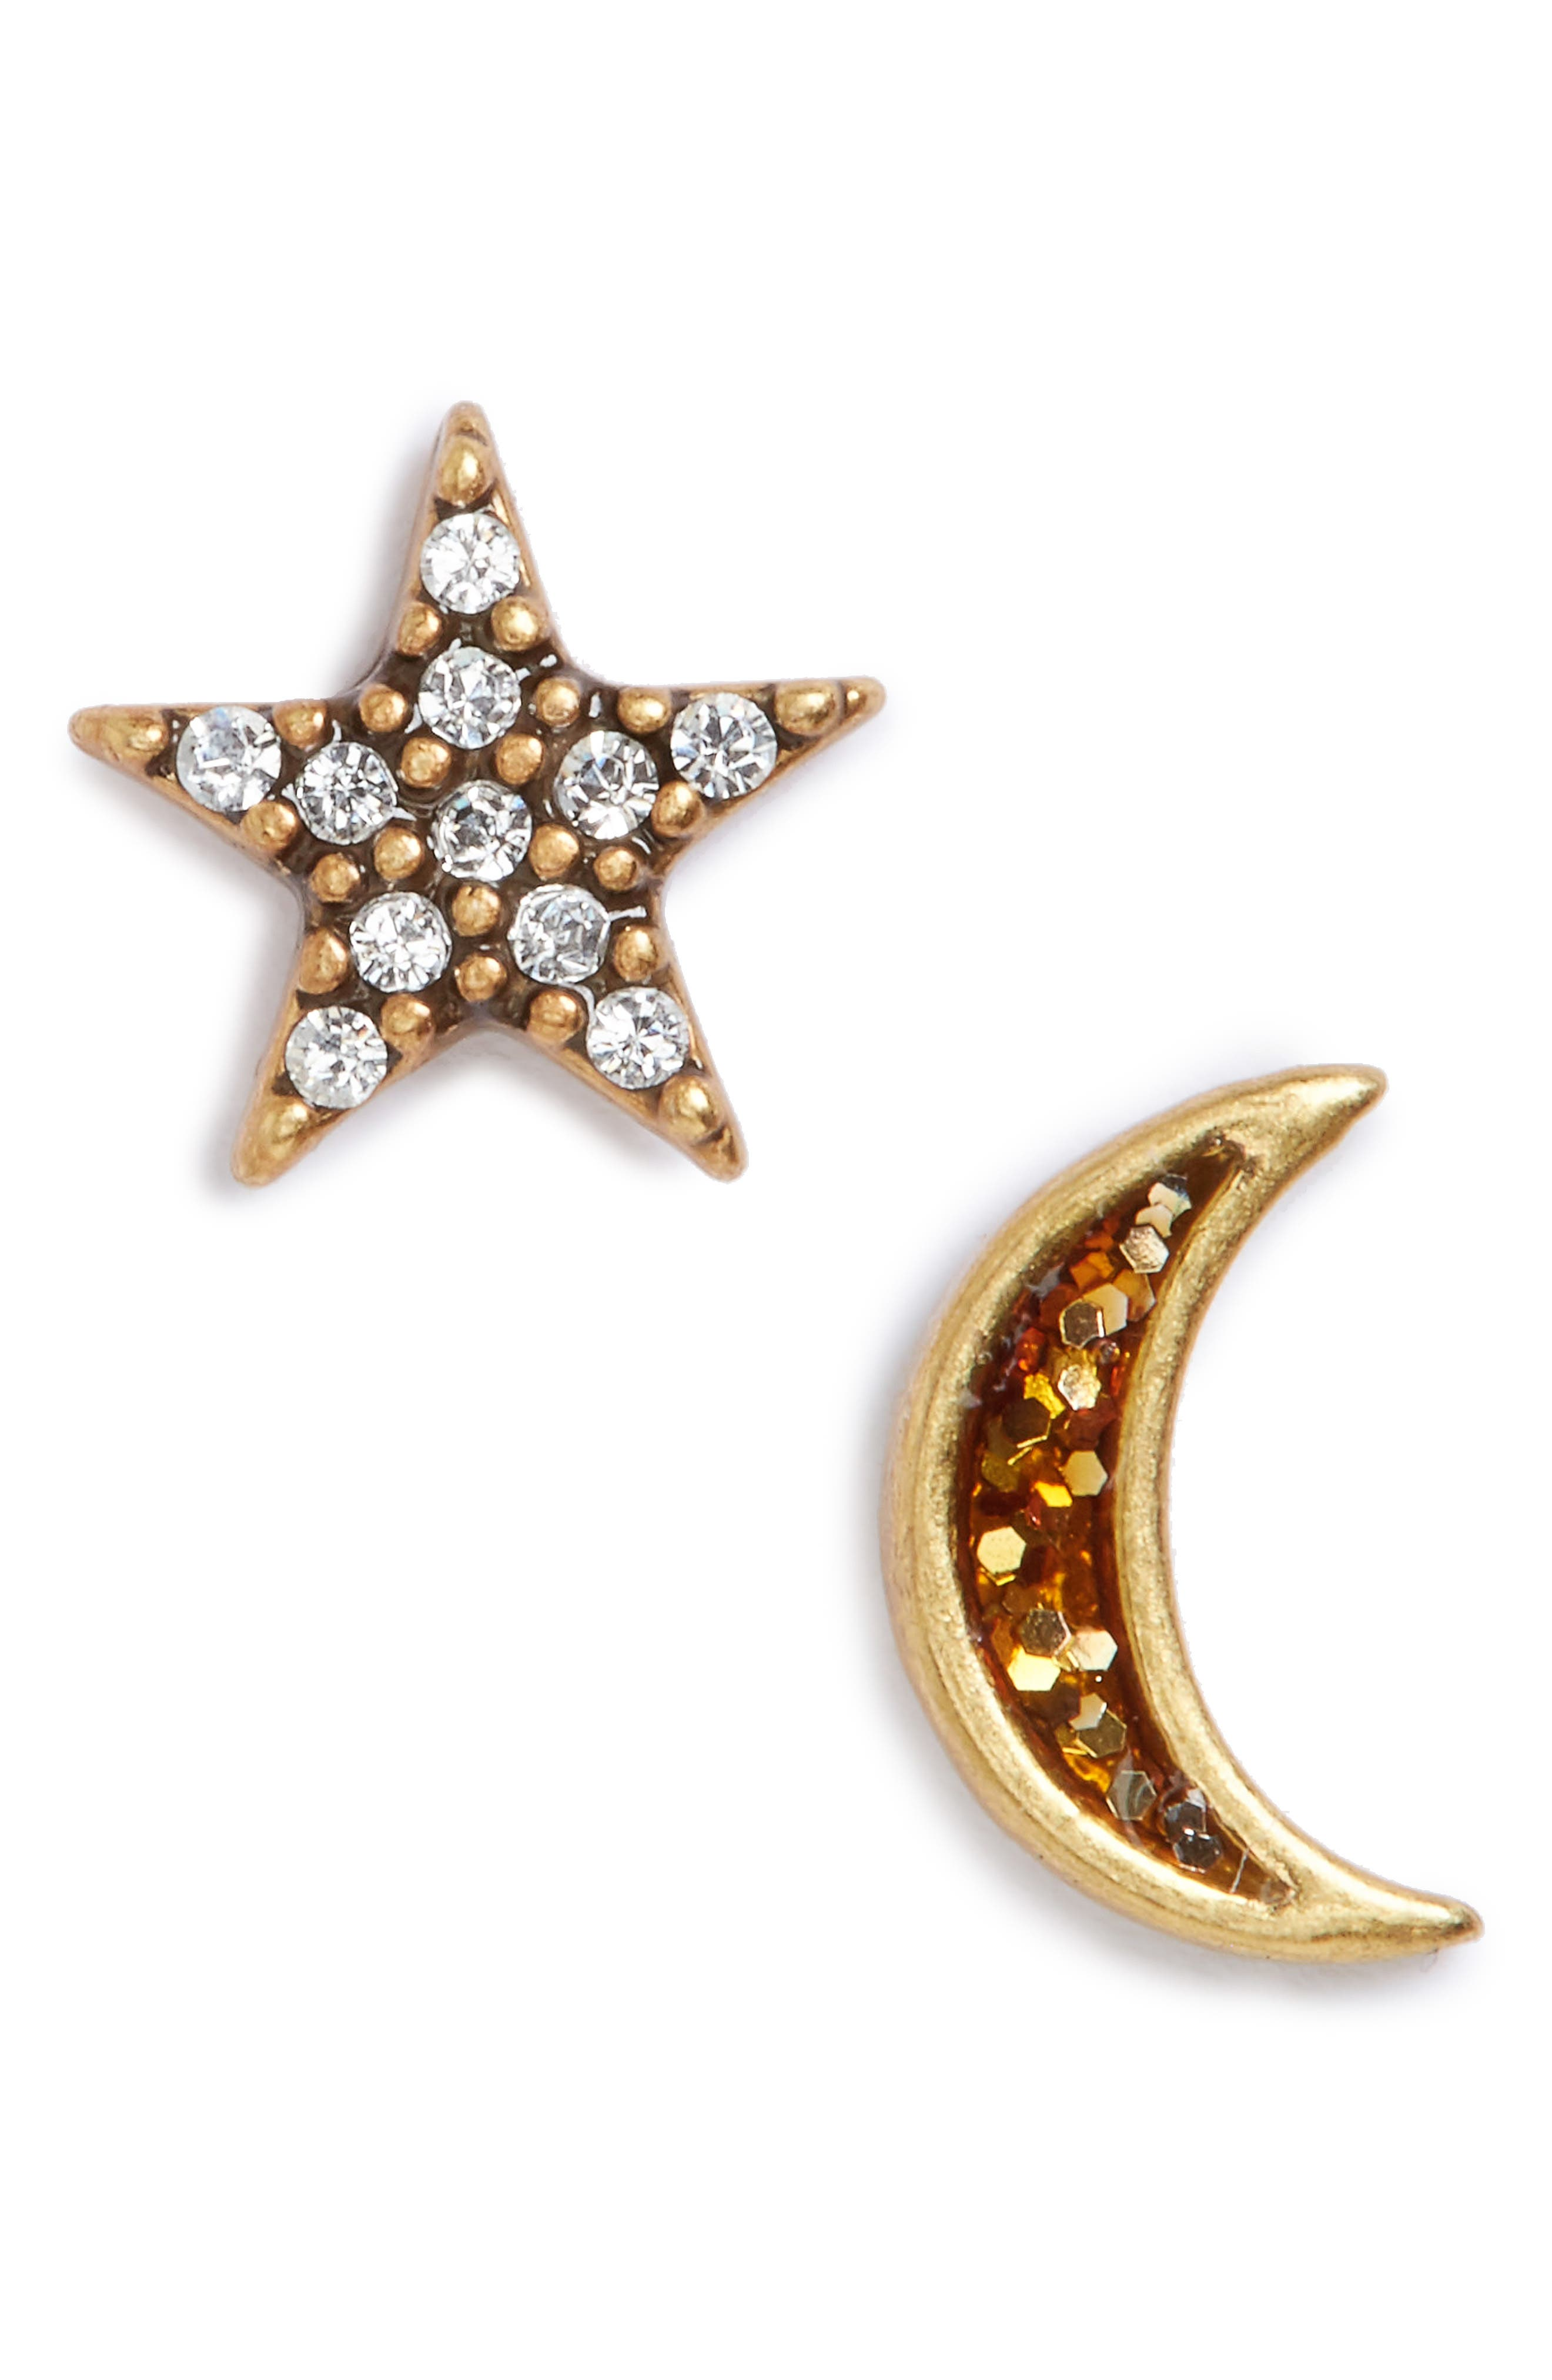 Main Image - MARC JACOBS Moon & Star Mismatch Stud Earrings